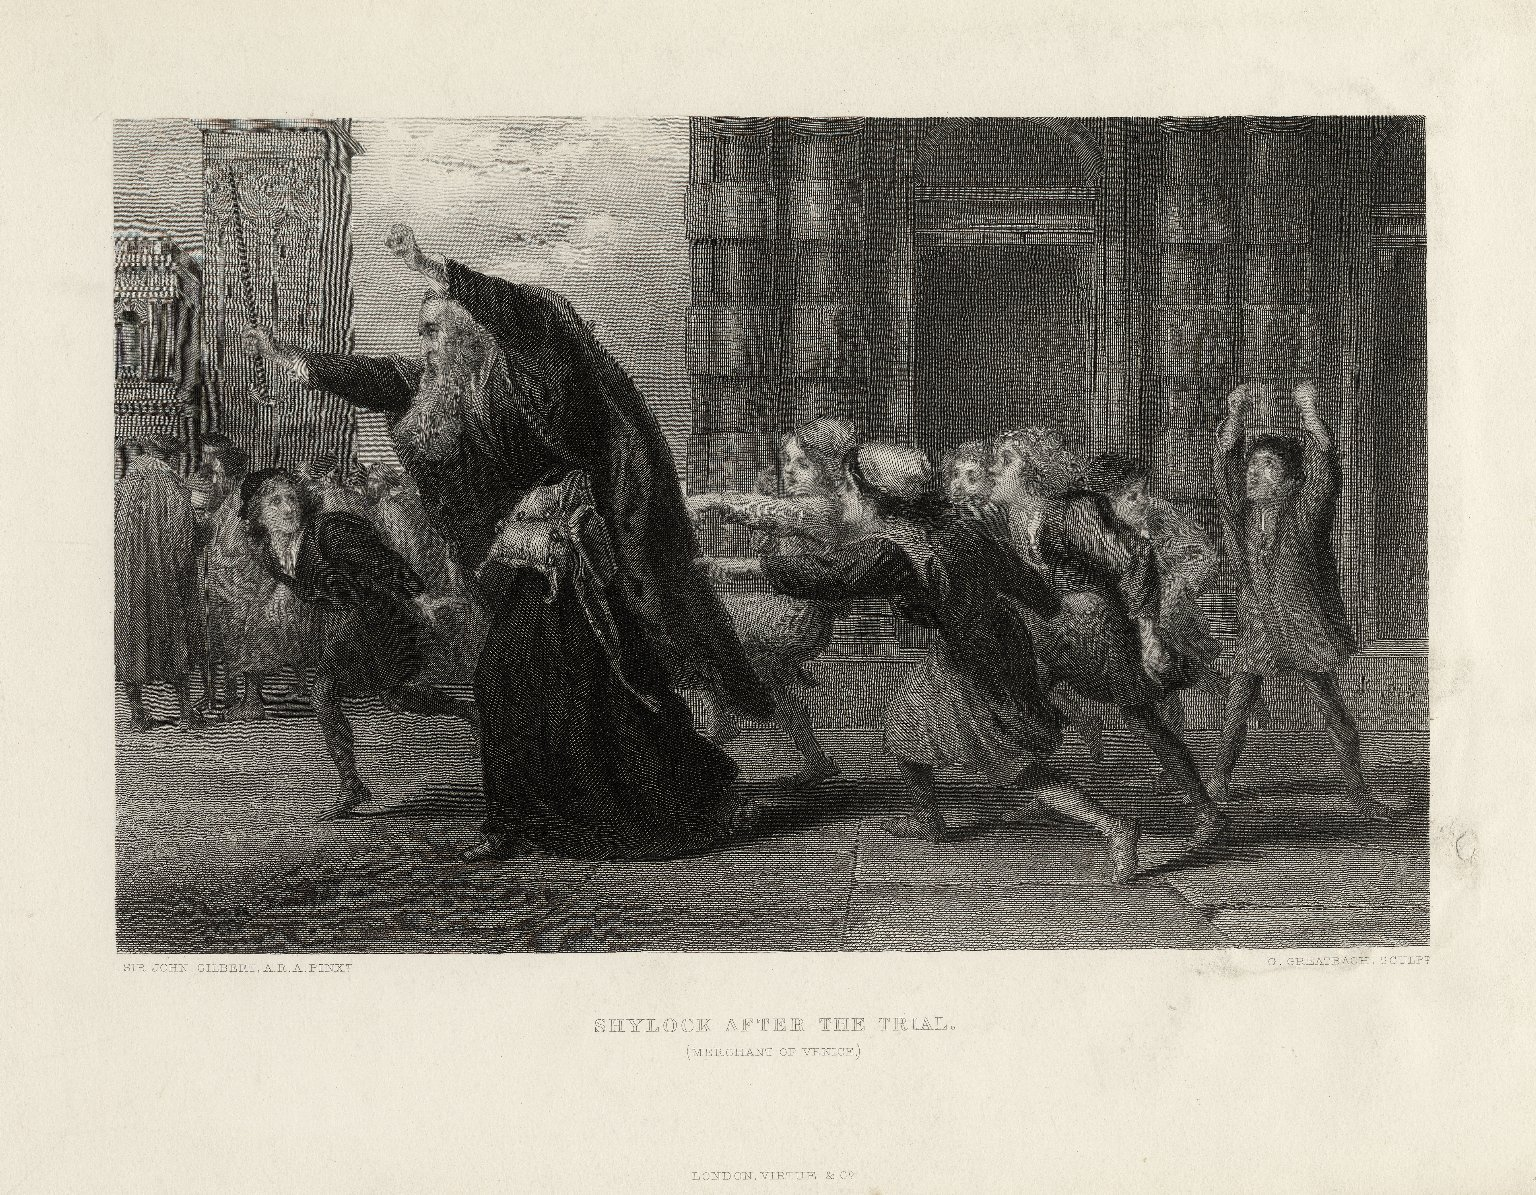 Shylock After the Trial by John Gilbert. (Image: Folger Shakespeare Library)